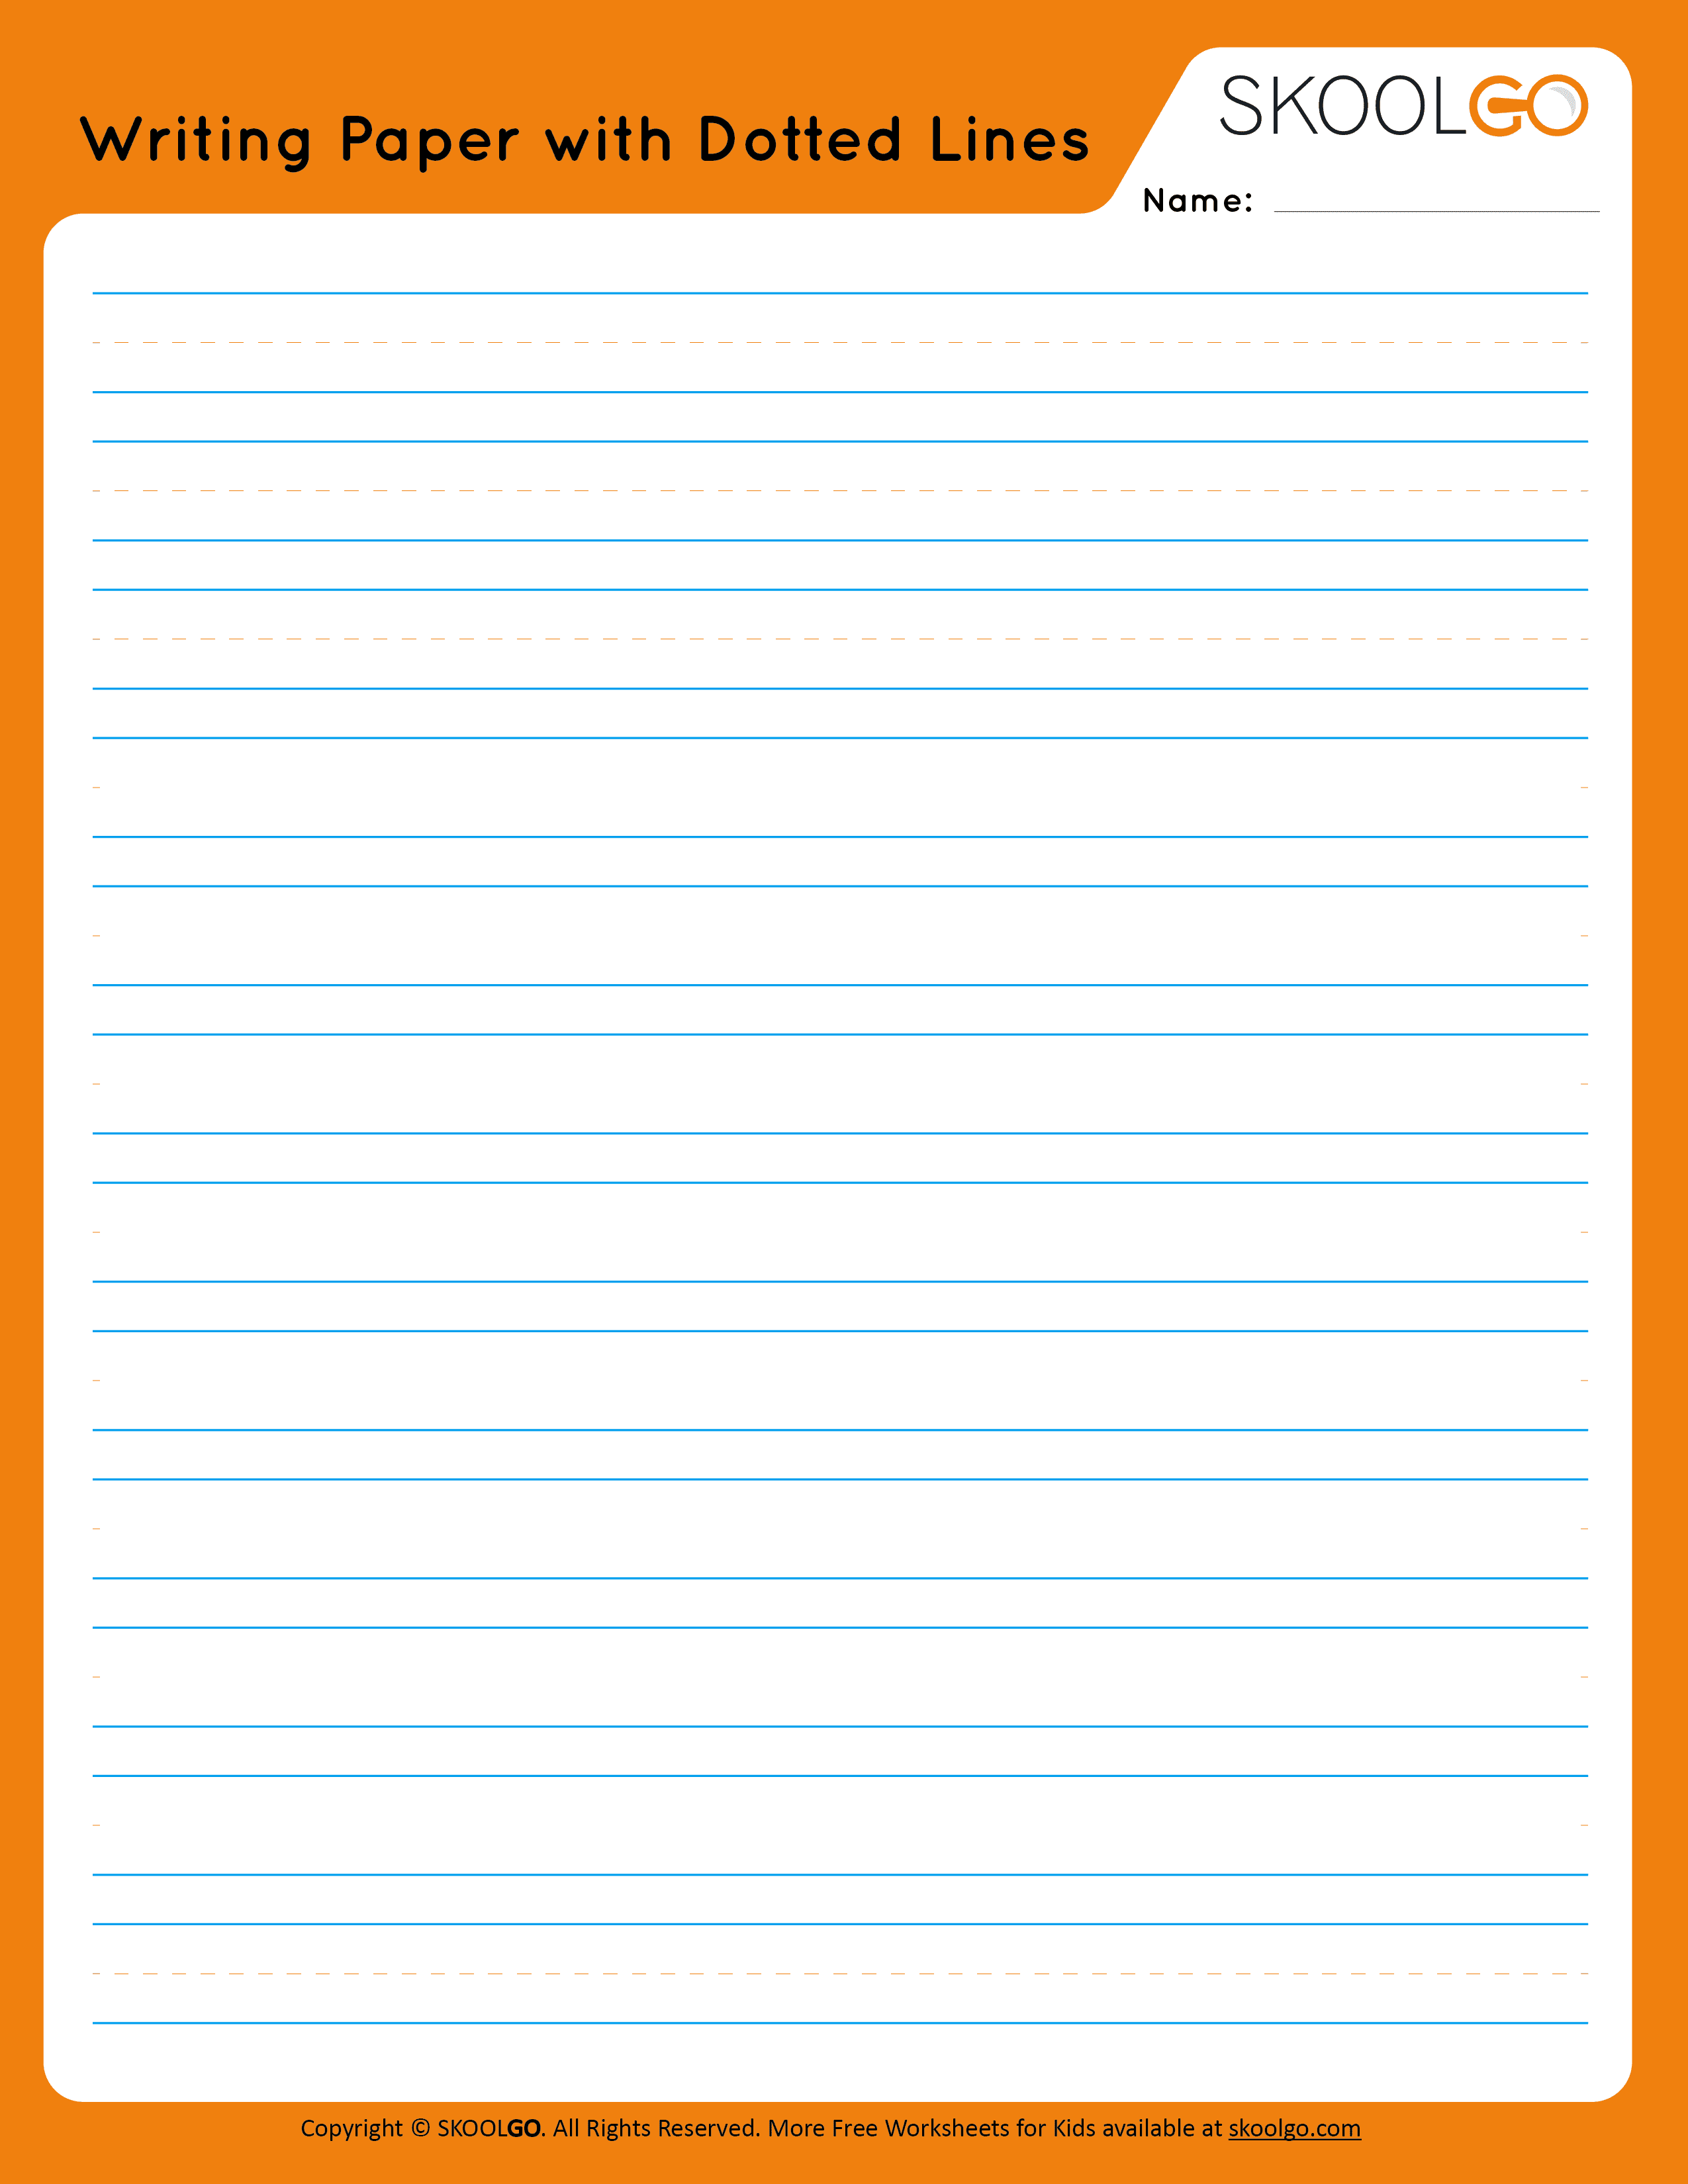 Writing Paper with Dotted Lines - Free Worksheet for Kids